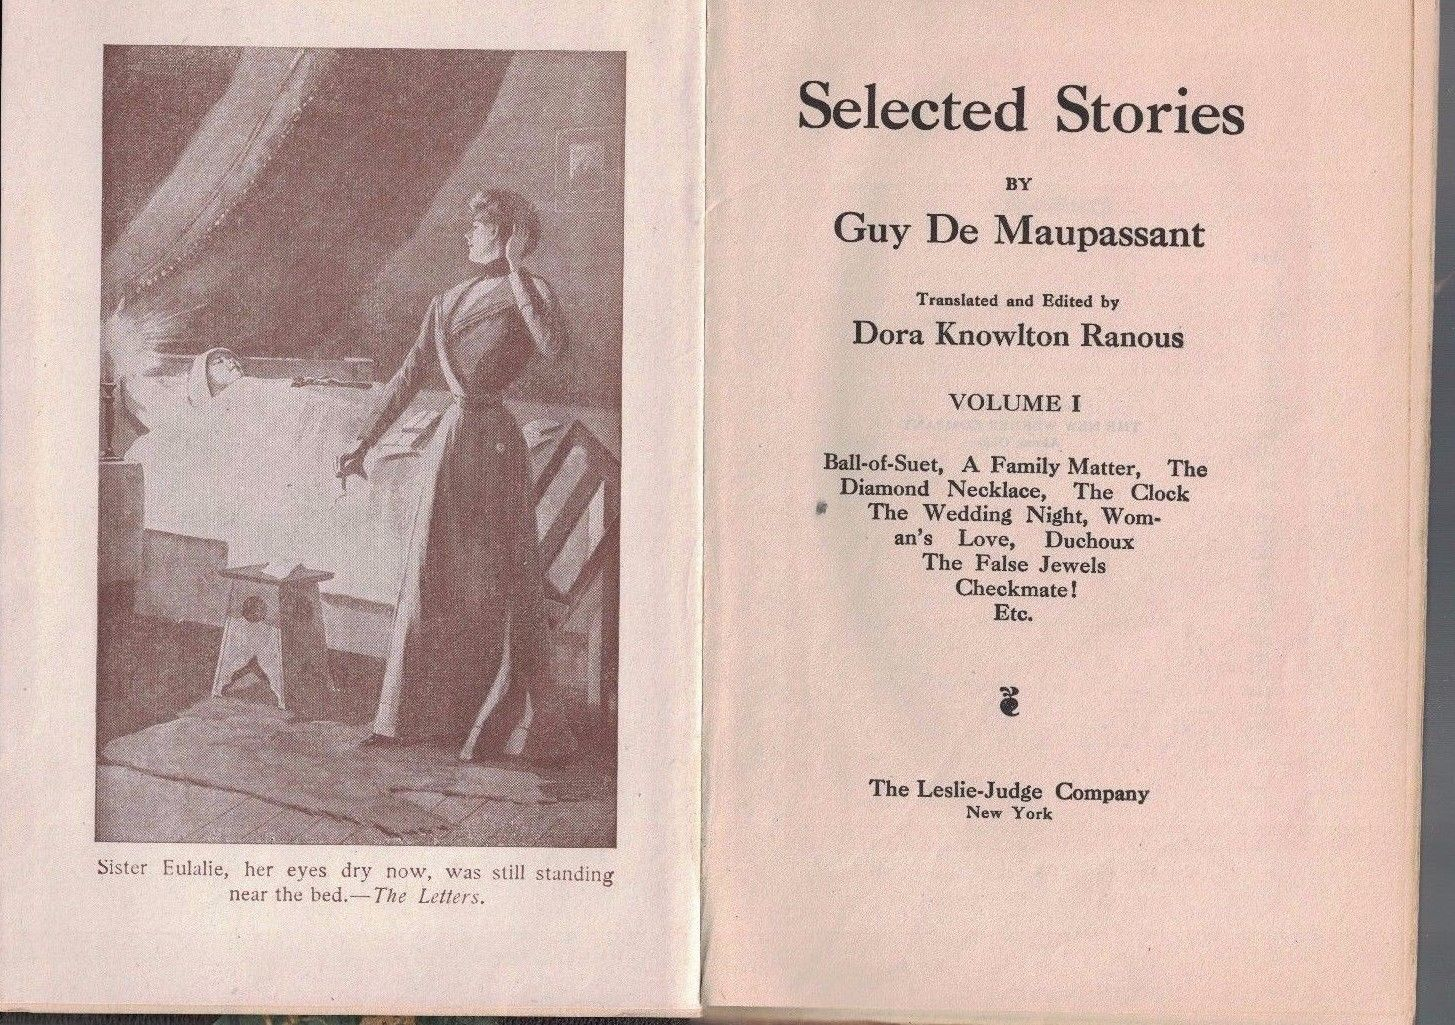 guy de maupassants story the diamond necklace essay Guy de maupassant's the necklace april 2, 2018 admin articles 0 this story is not only extremely ironic but it also has so much depth and symbolism involved.